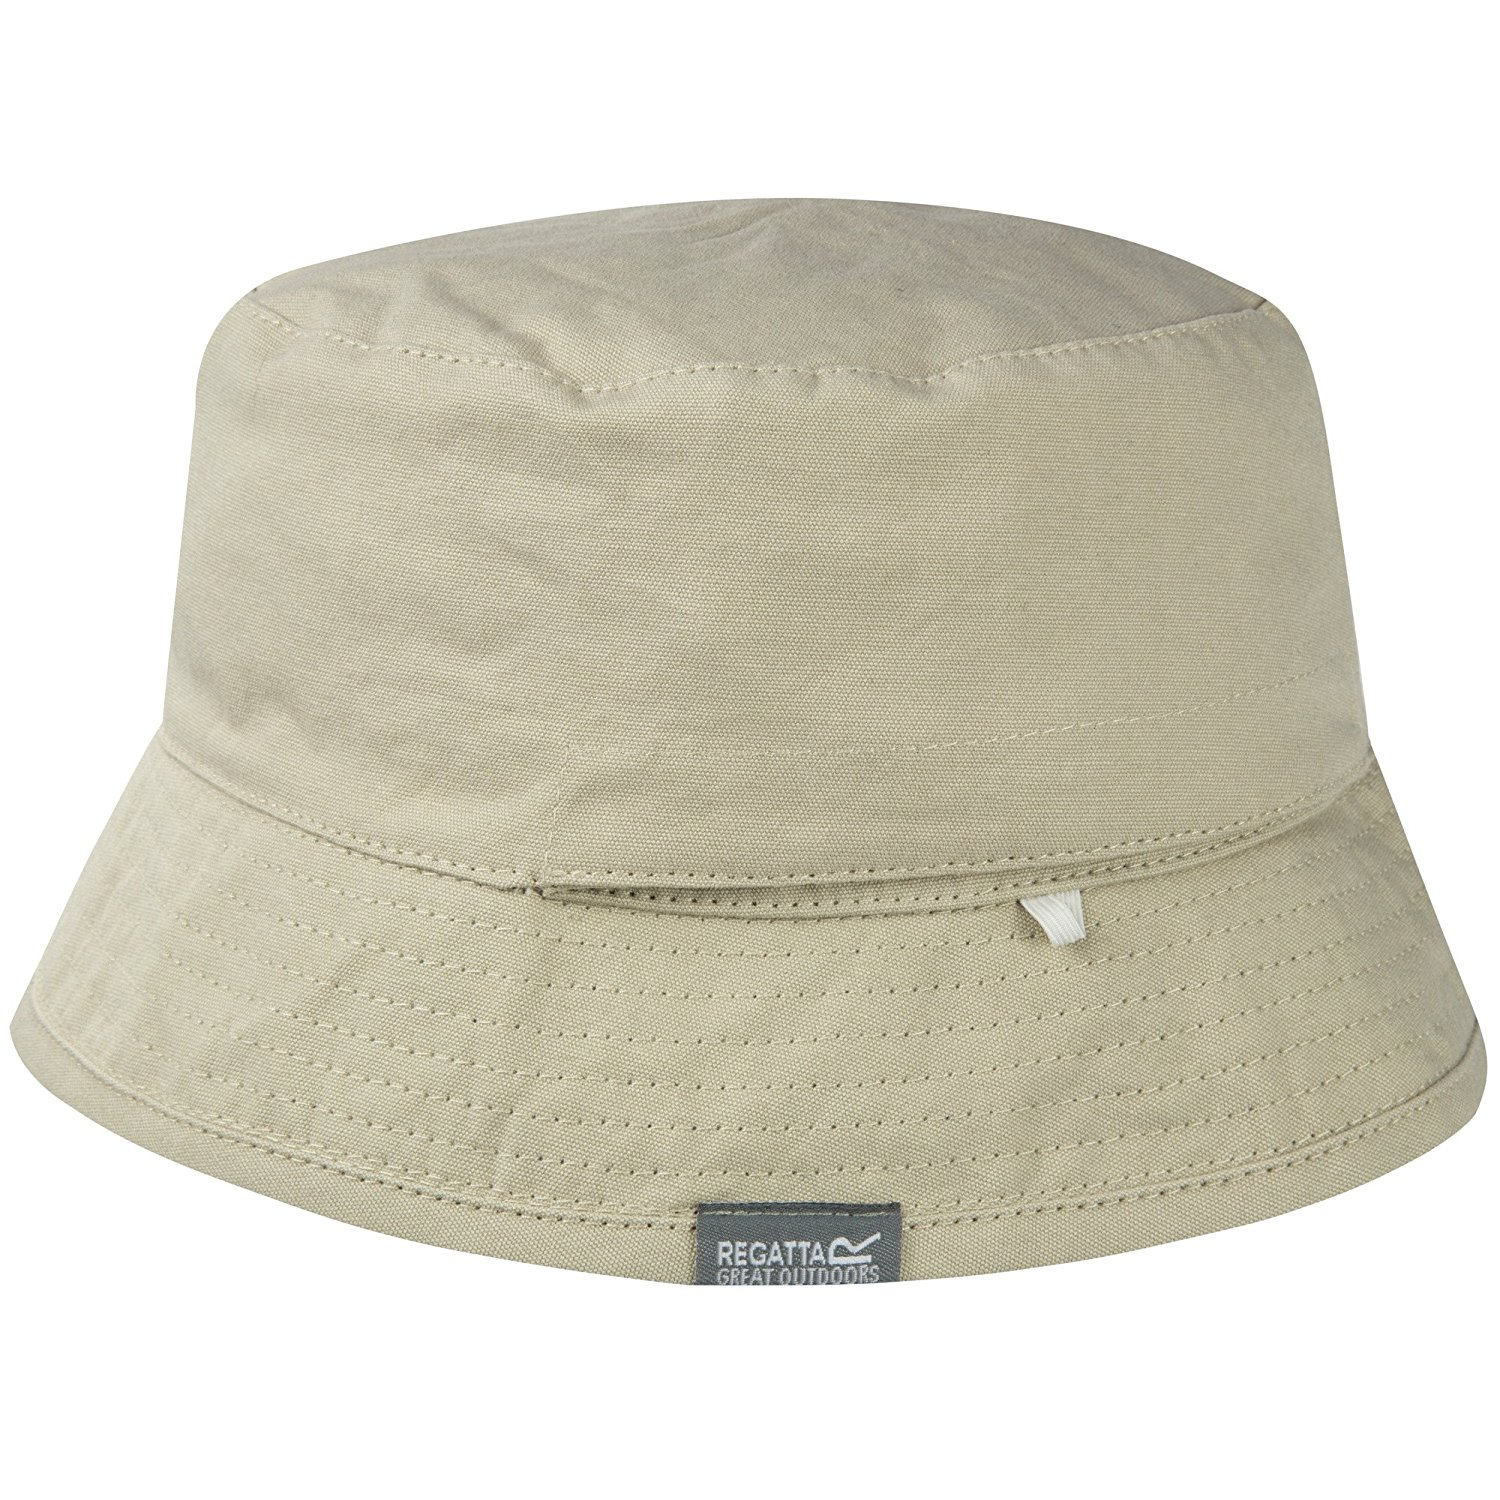 36325906866 Get Quotations · Regatta Great Outdoors Adults Unisex Spindle II Bucket Hat